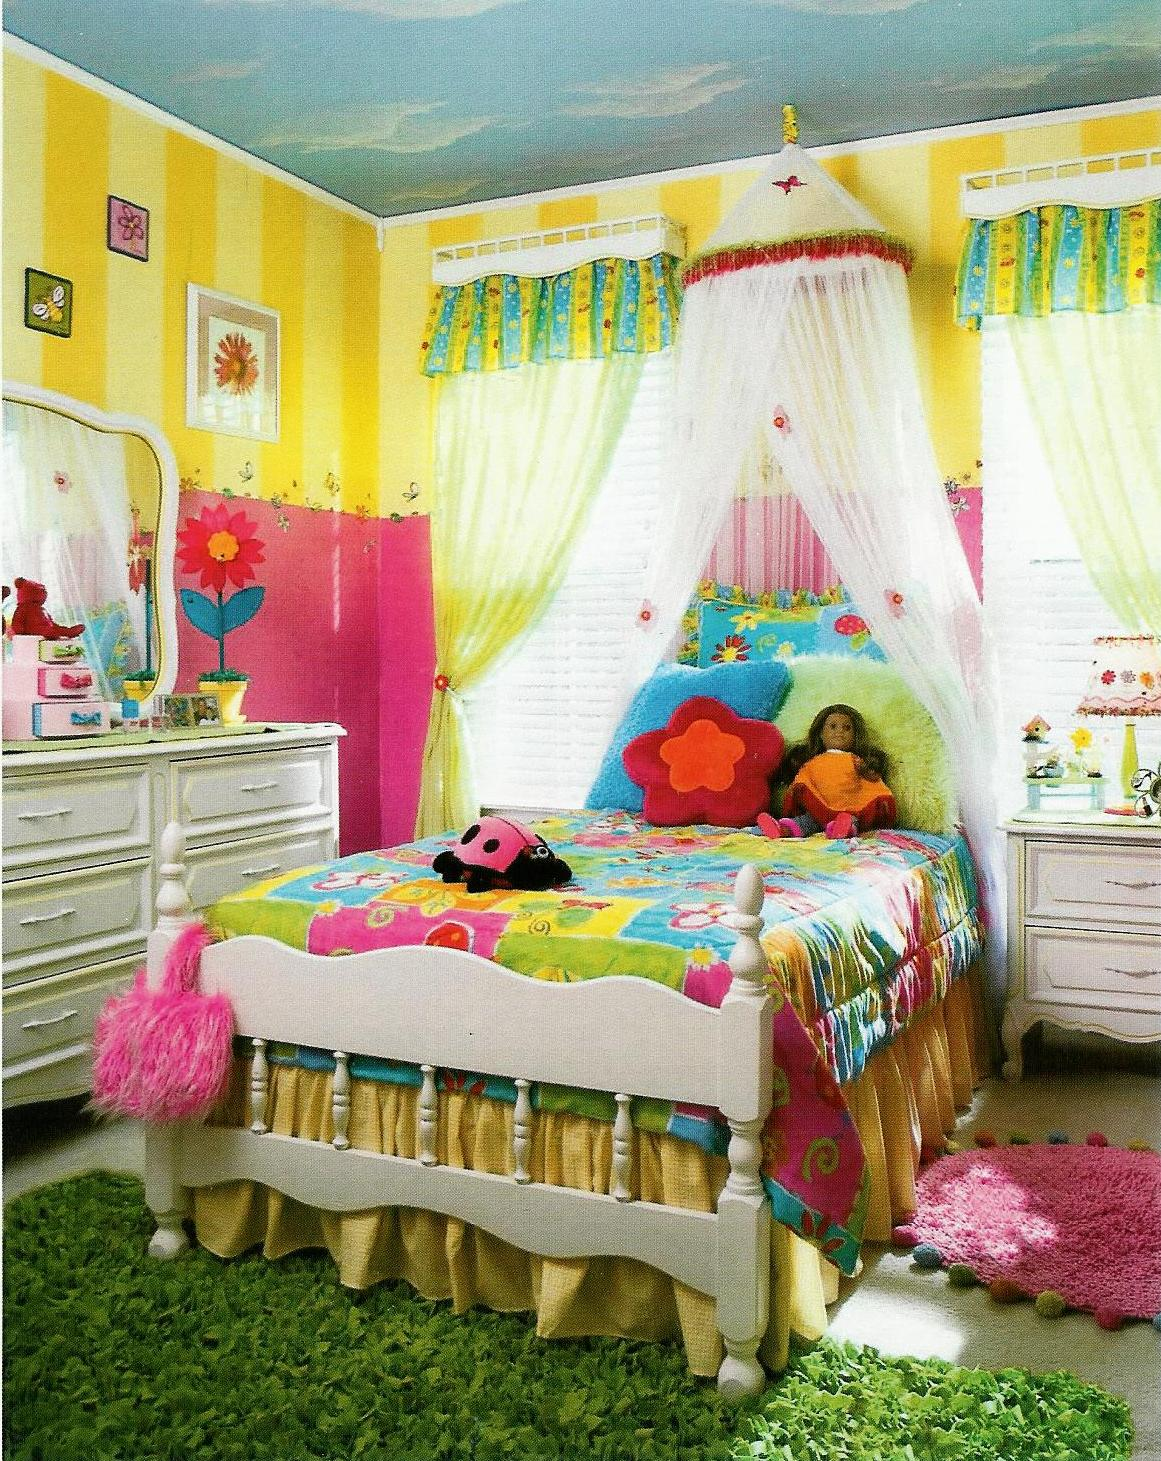 Kids rooms decorations 2017 grasscloth wallpaper for Room decor for kids